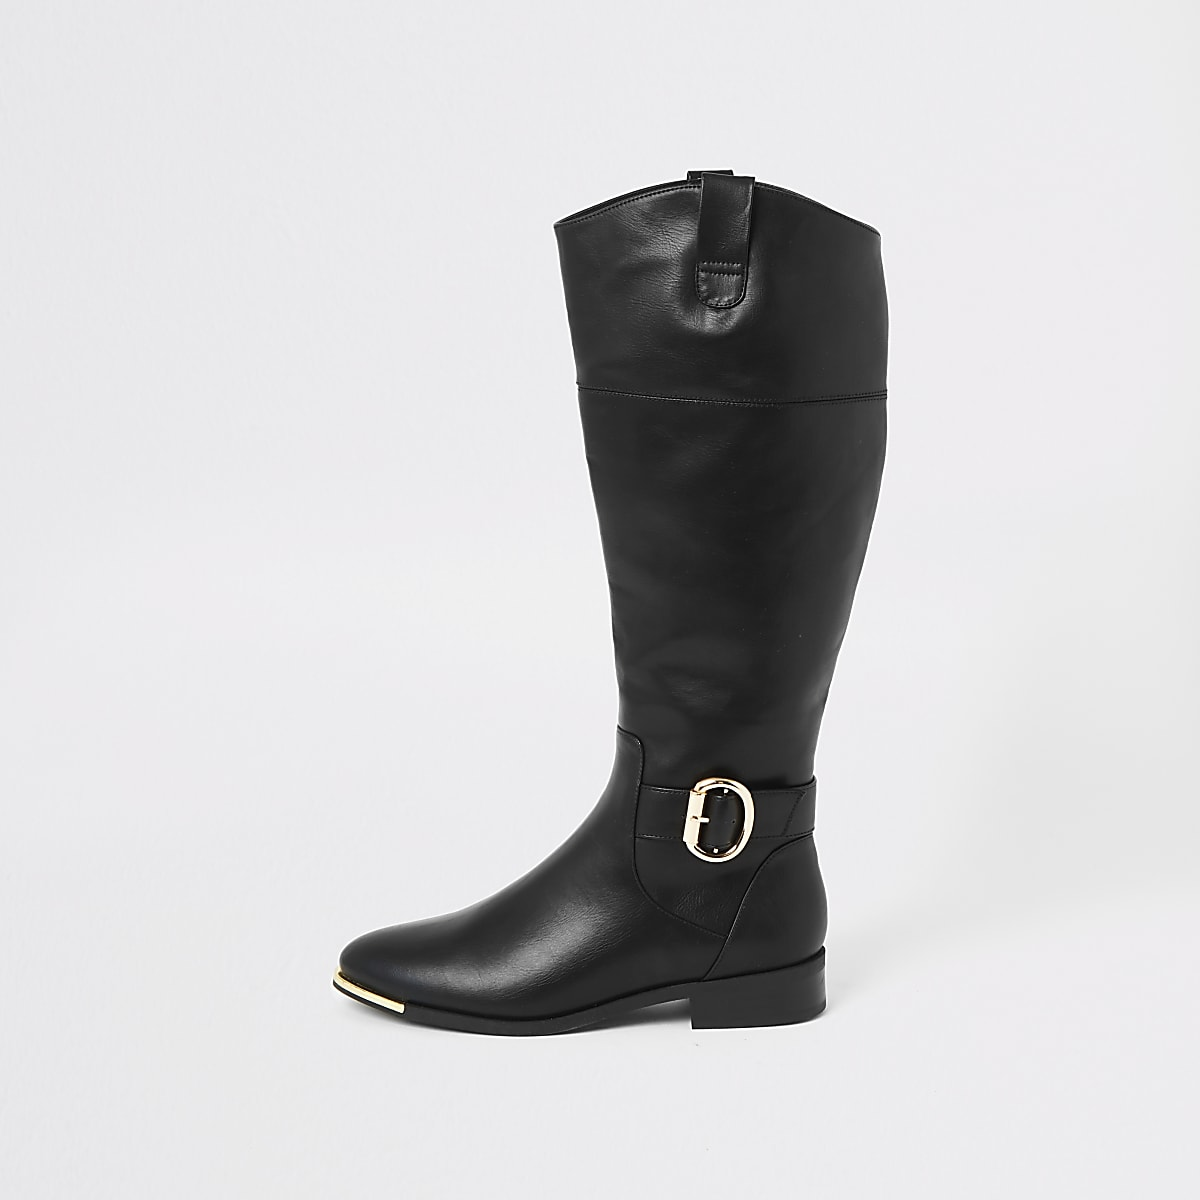 Black buckle knee high boots